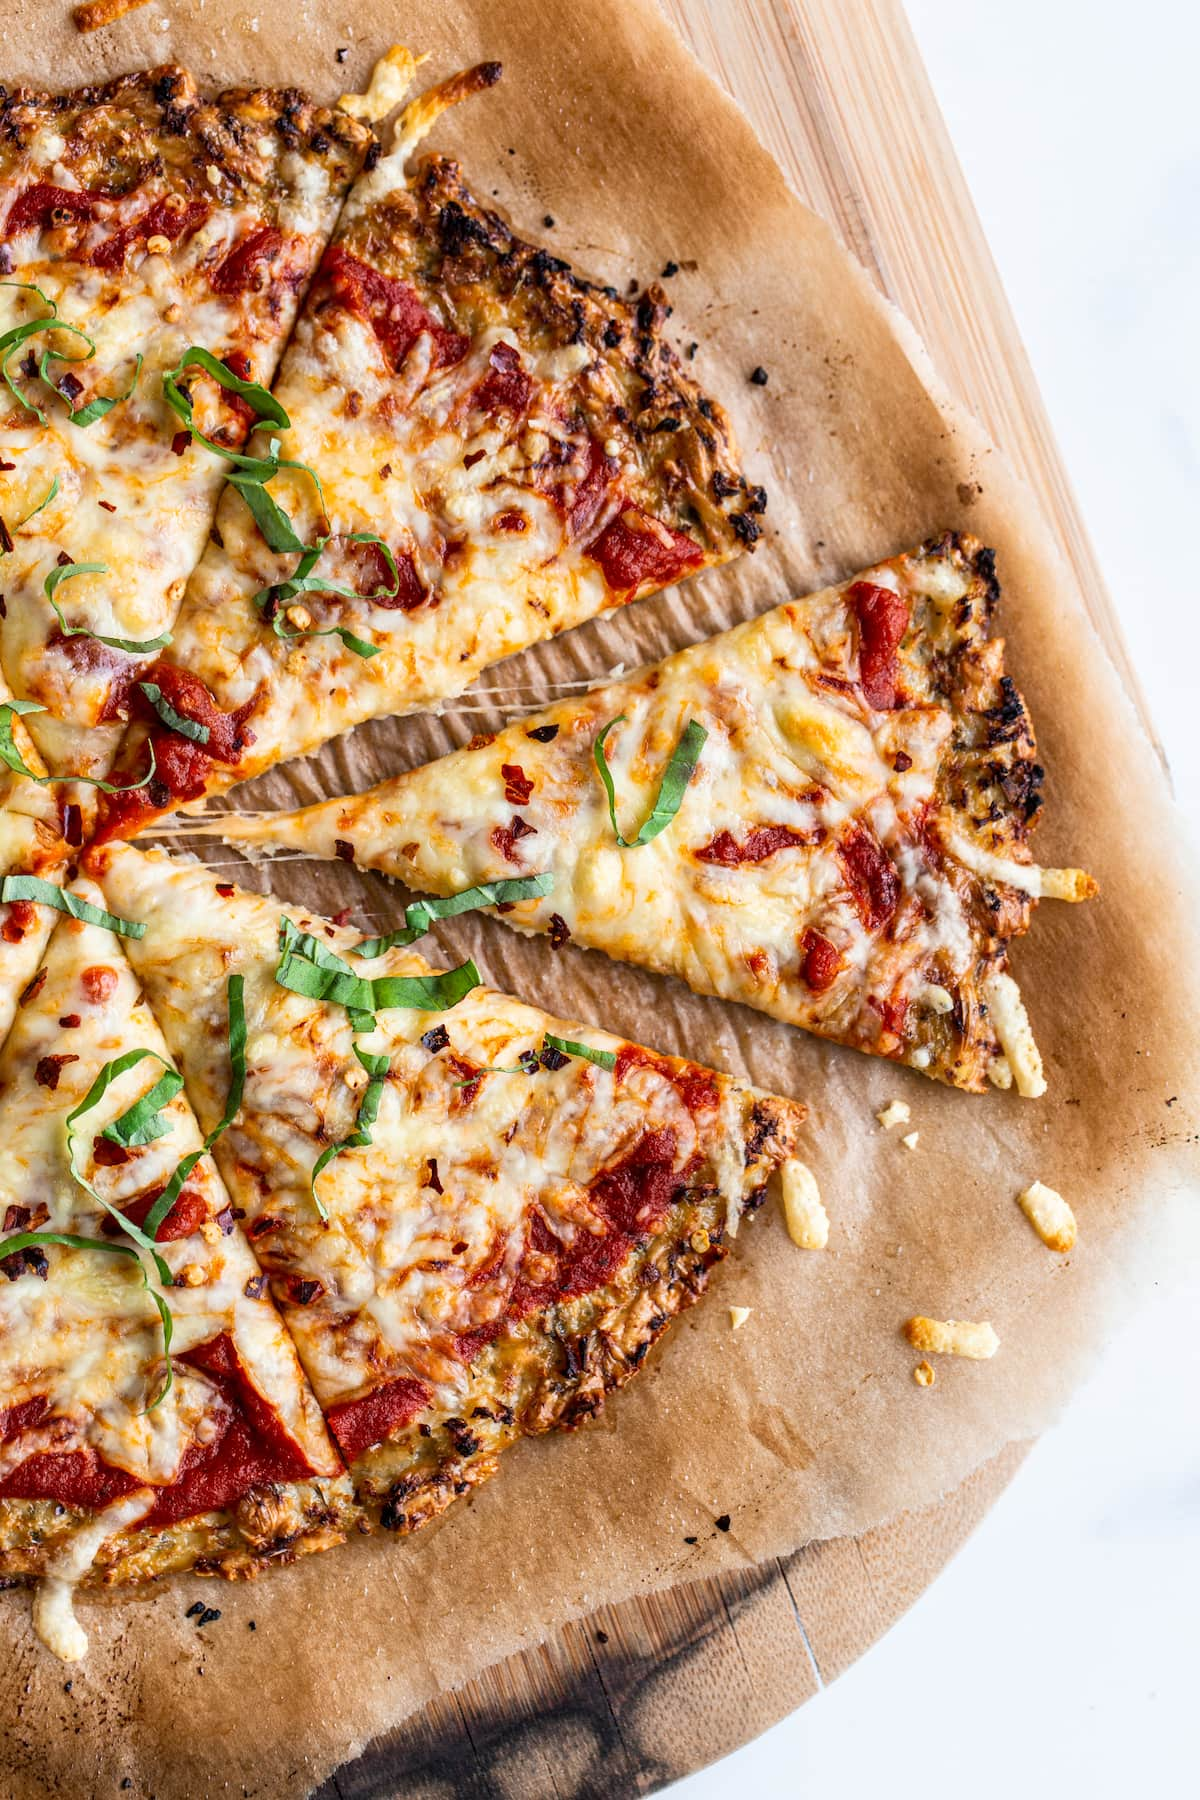 Cauliflower pizza cut into slices.